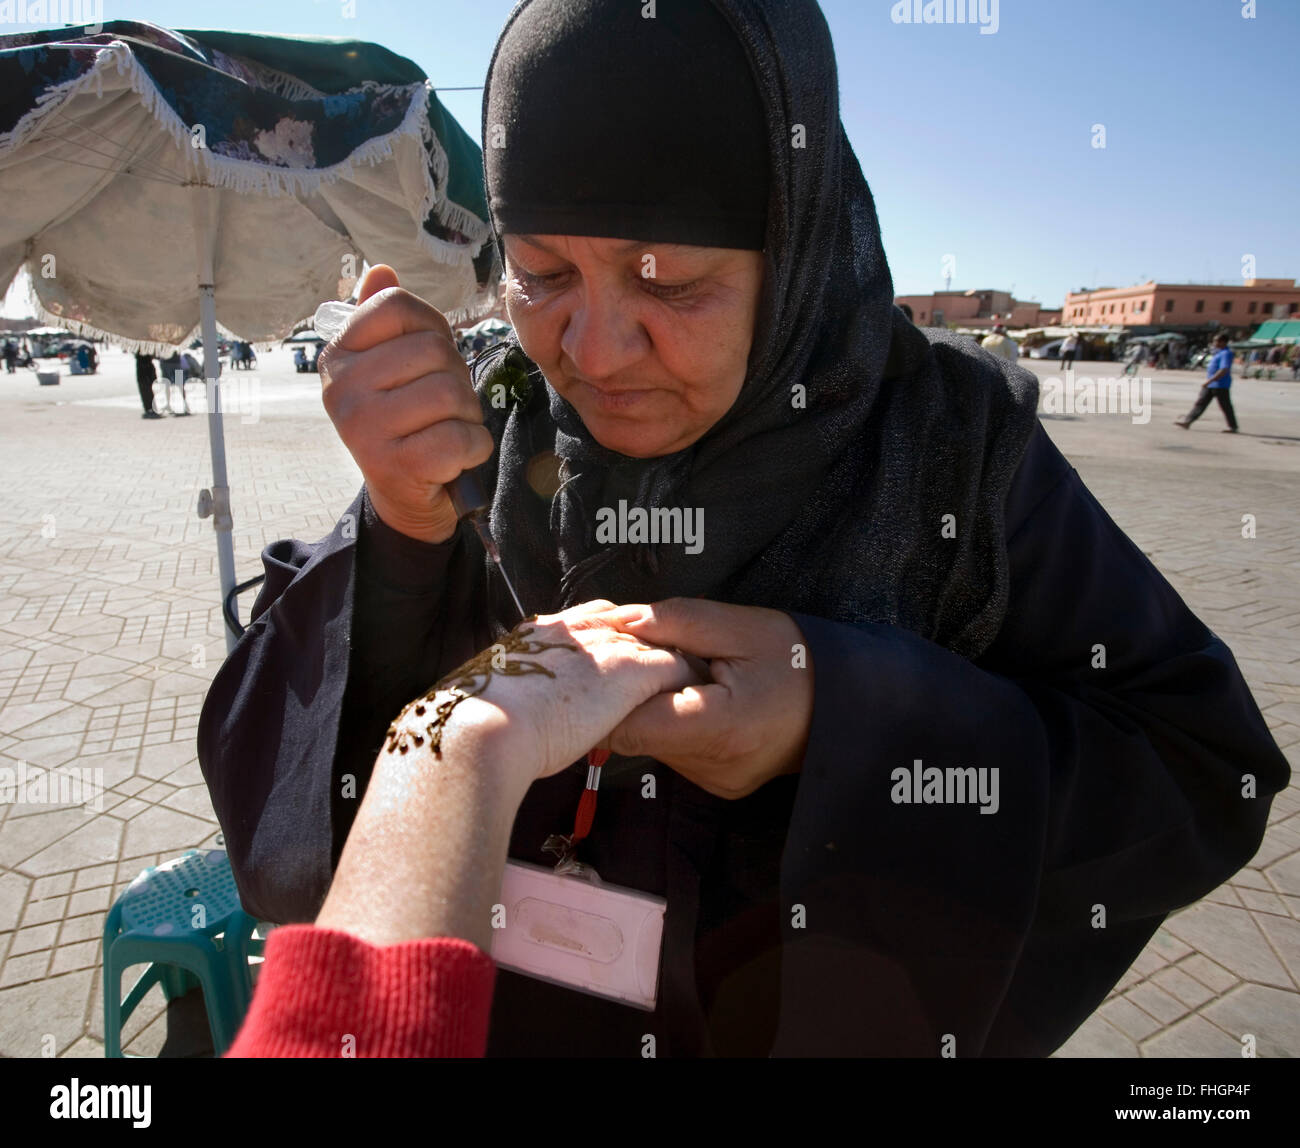 Having your hand decorated with Henna Dye in centre of Marrakech. The final design can last for about 3 months. - Stock Image